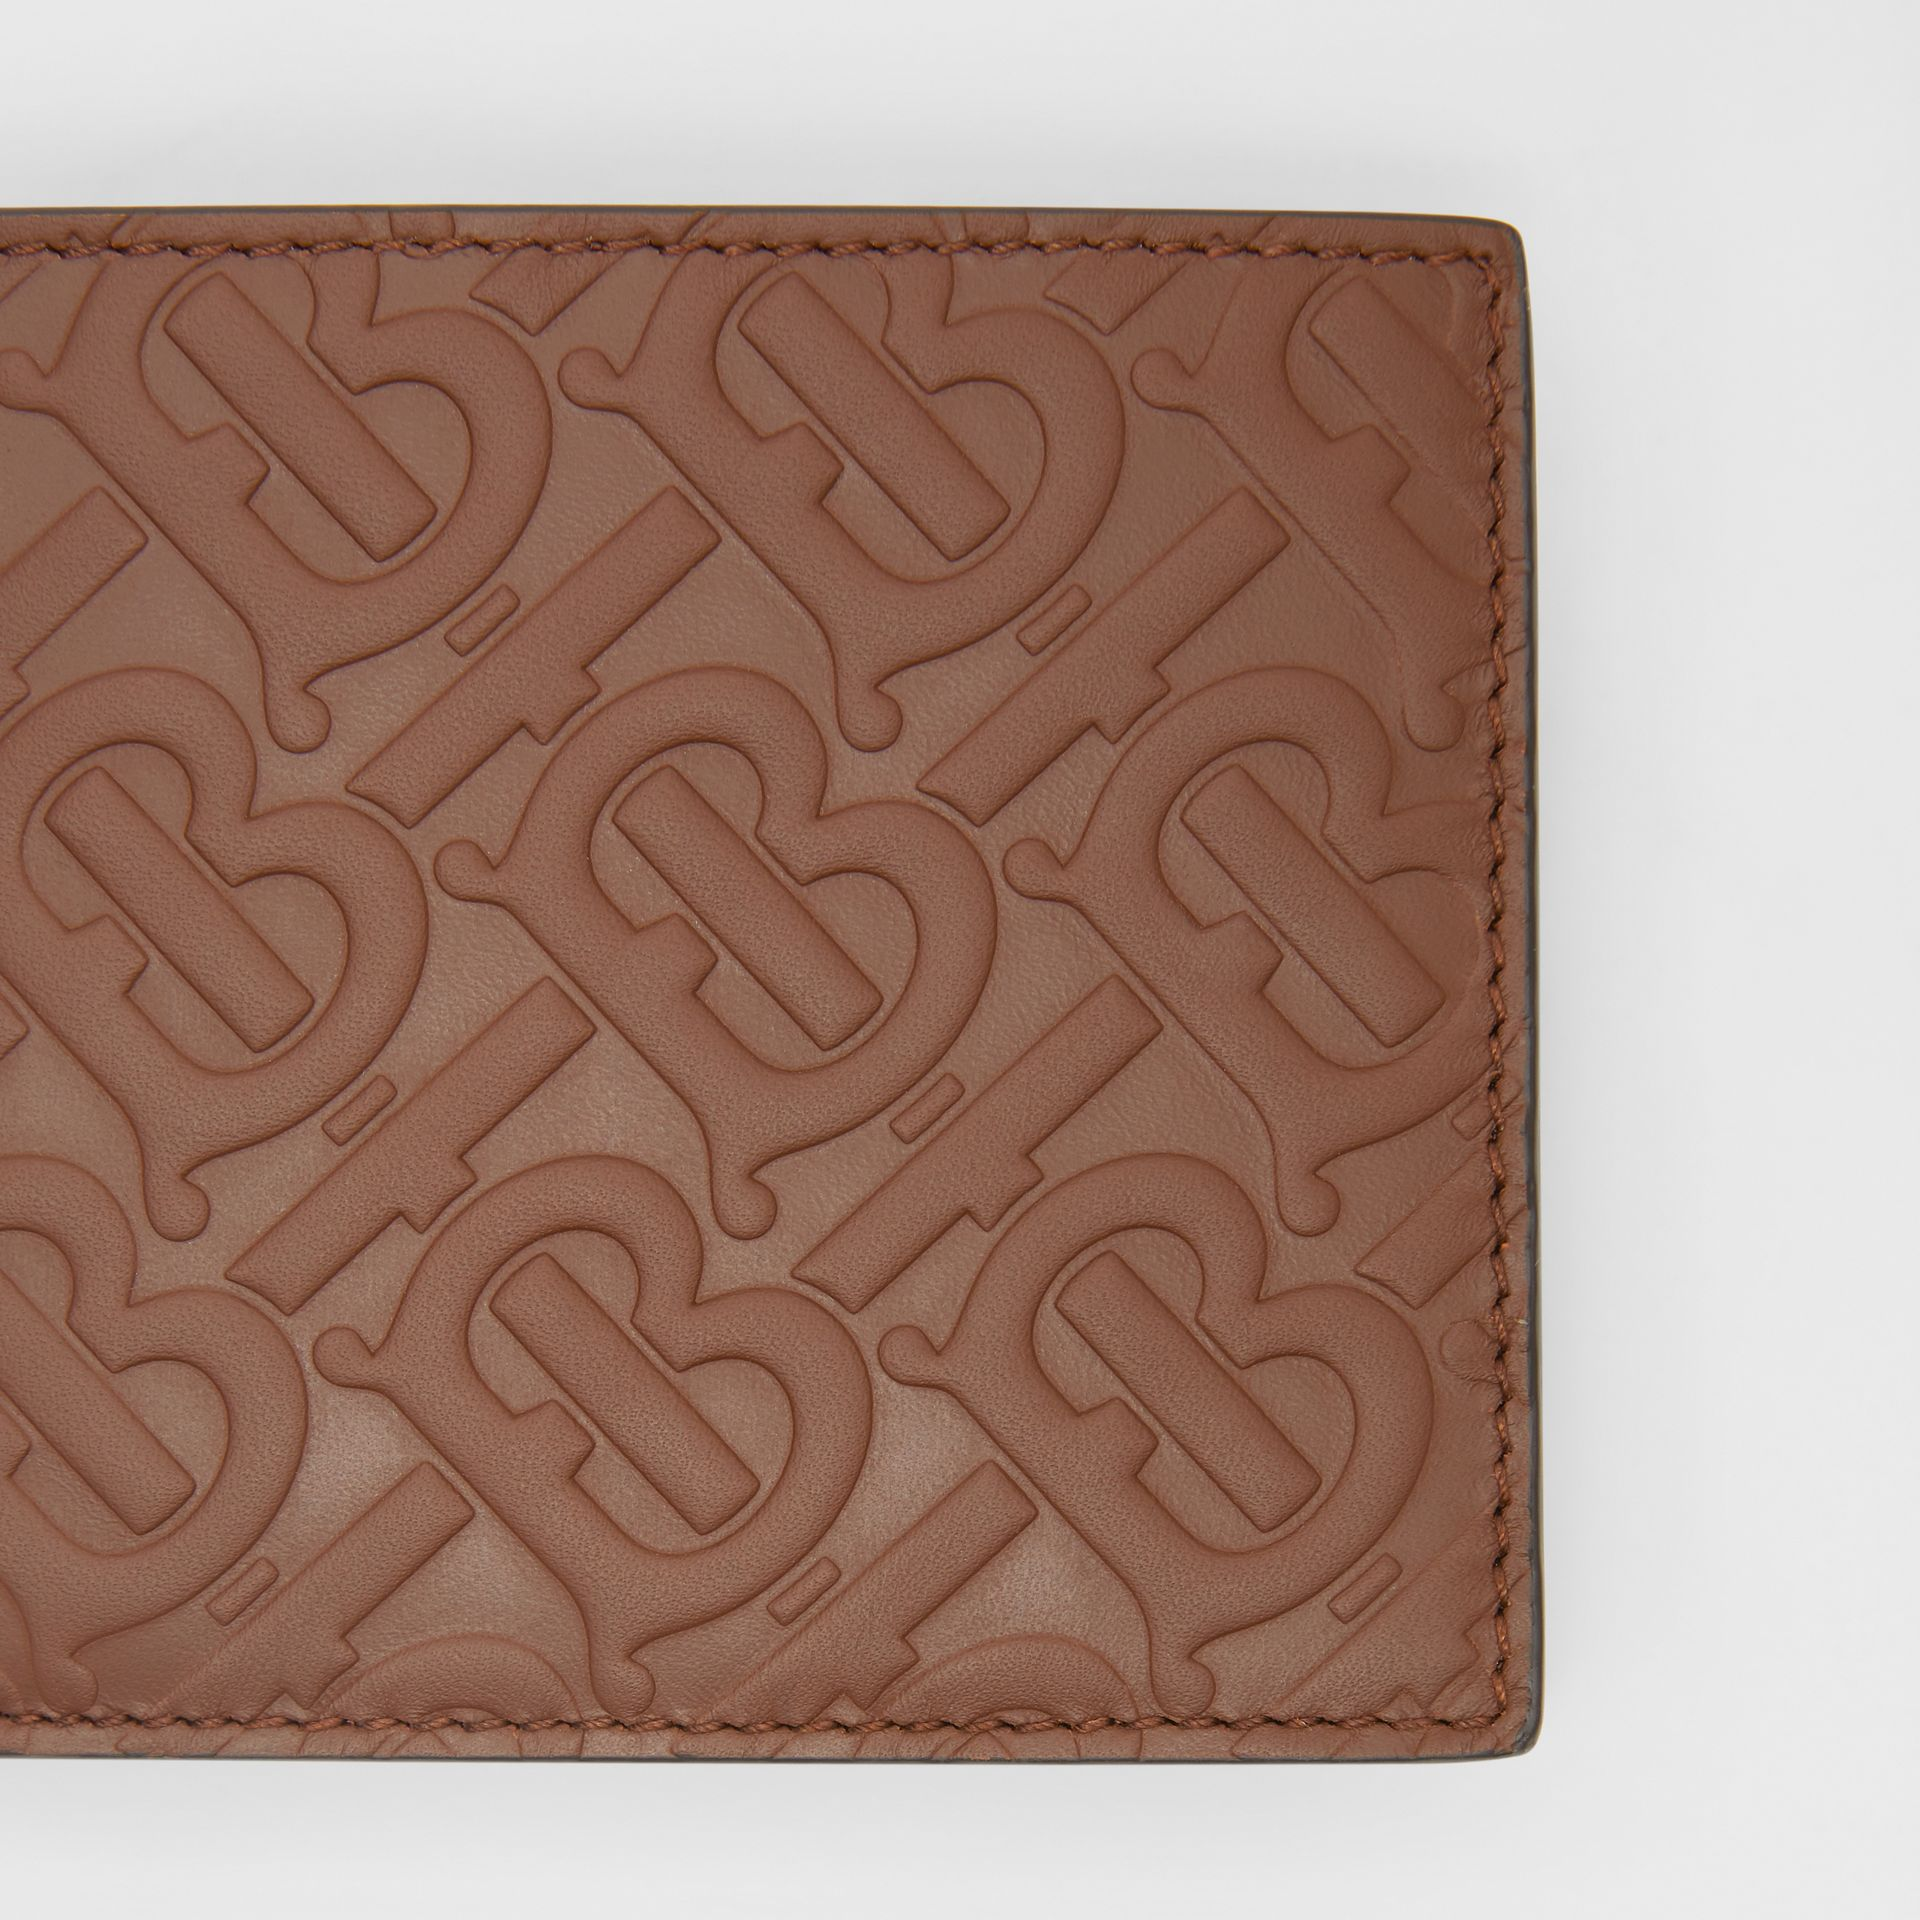 Monogram Leather International Bifold Wallet in Dark Tan - Men | Burberry United Kingdom - gallery image 1